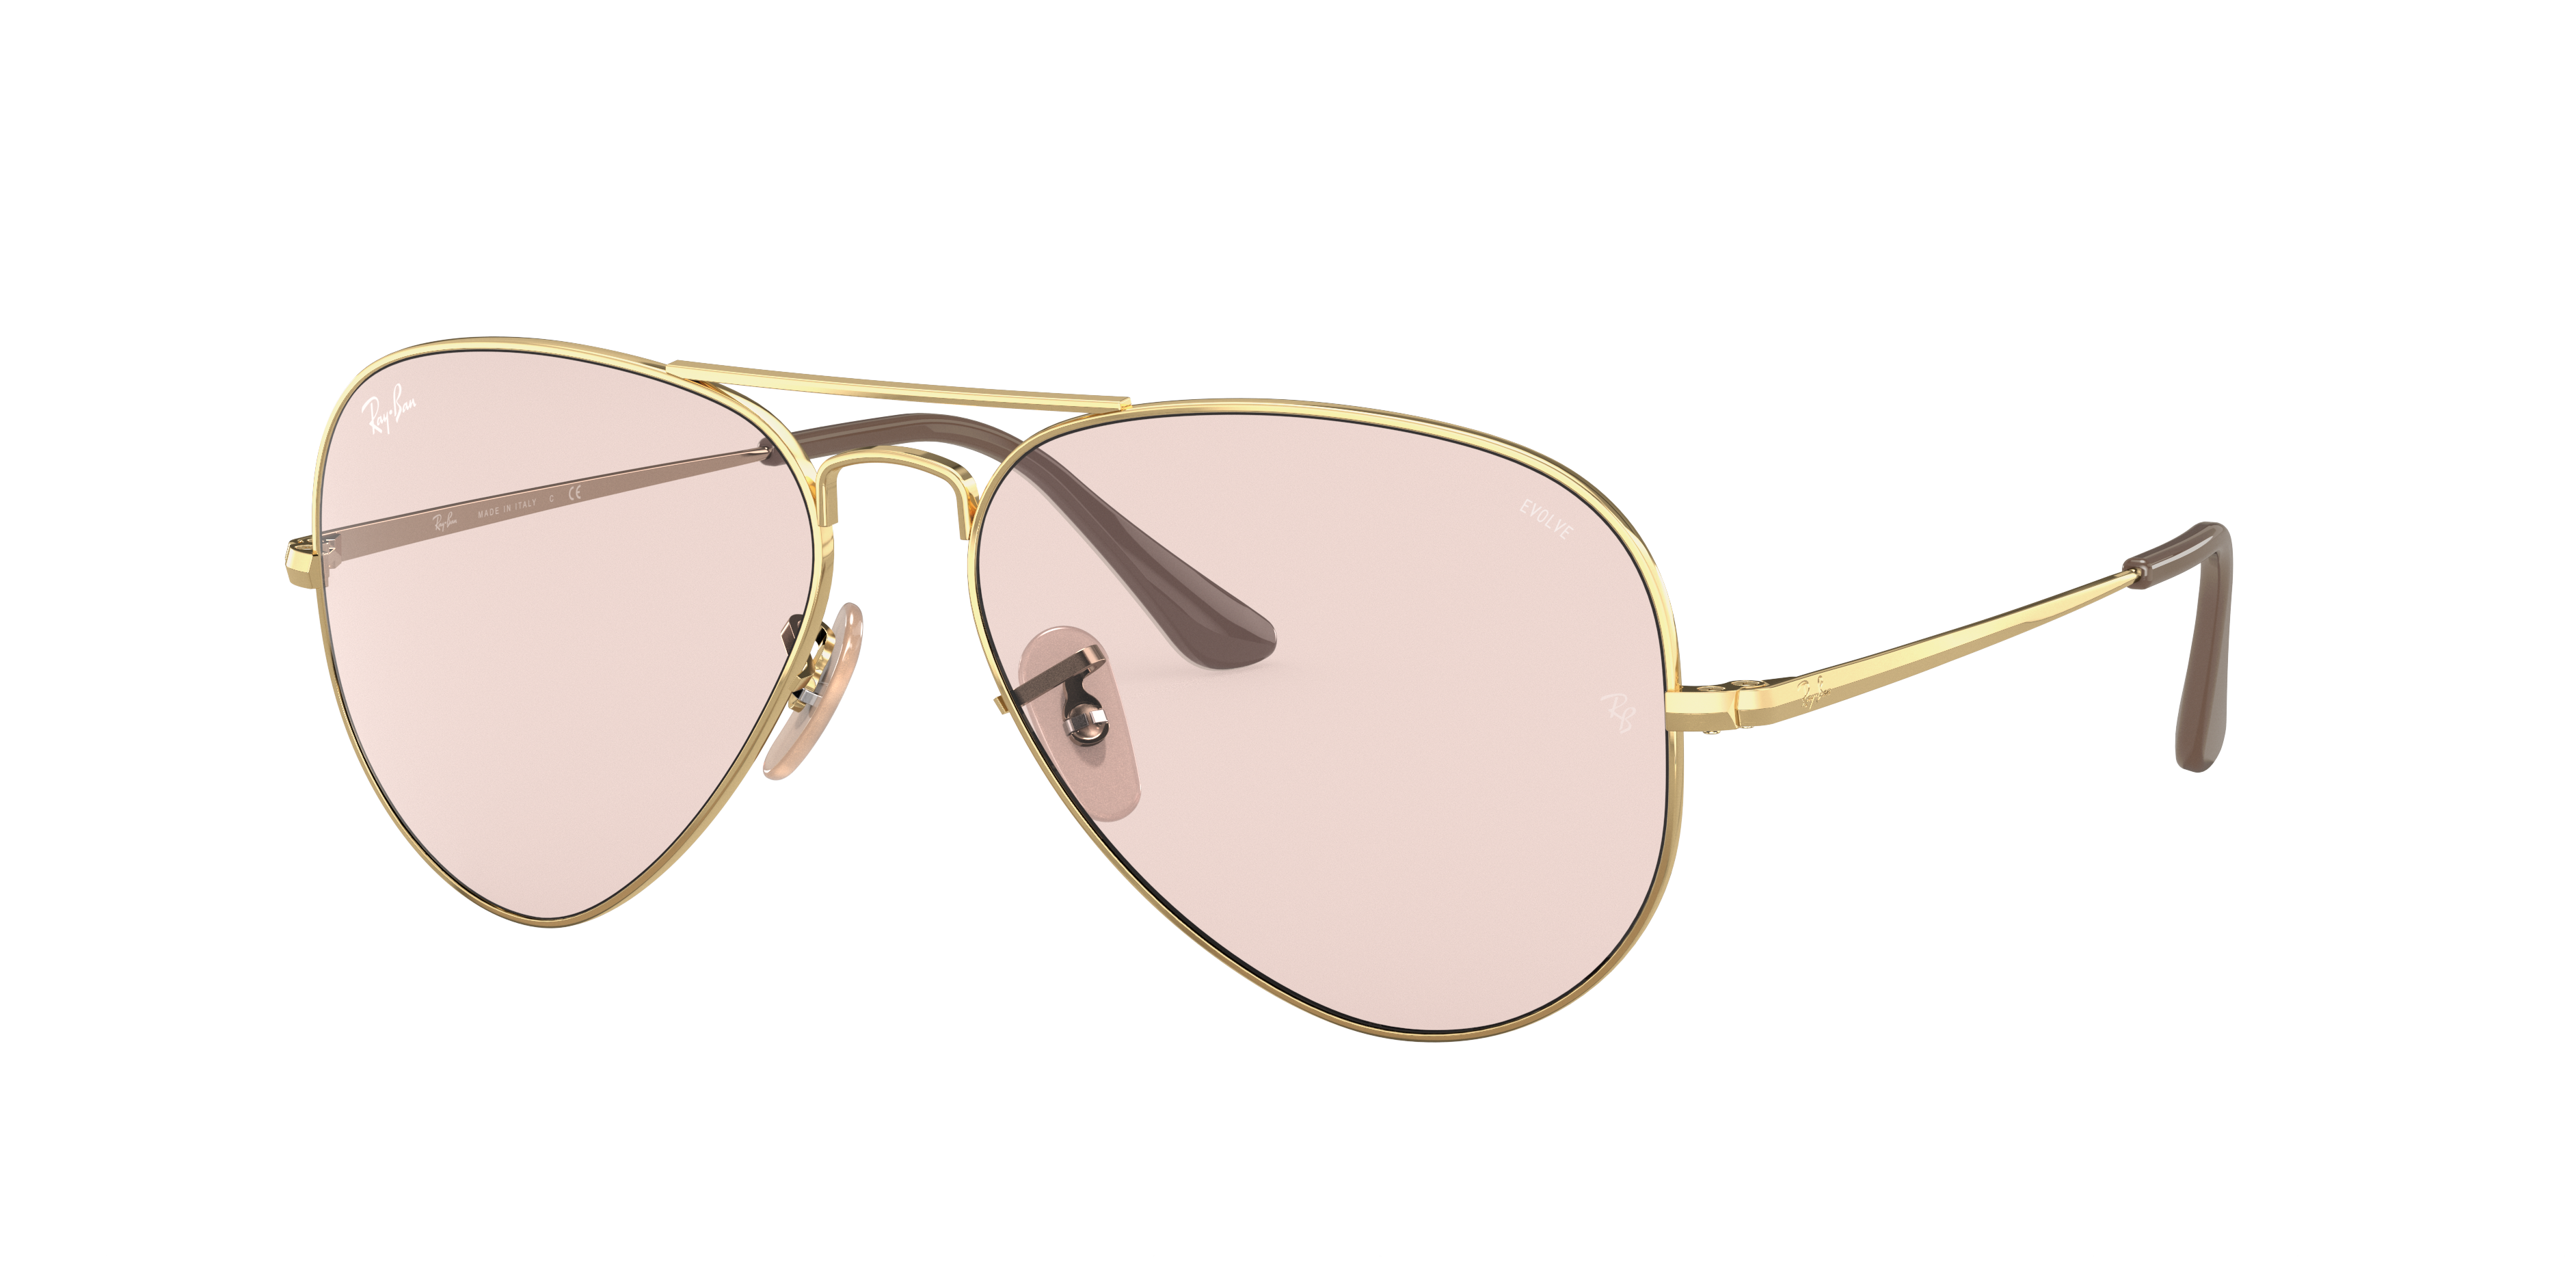 Ray-Ban Rb3689 Solid Evolve Gold, Pink Lenses - RB3689